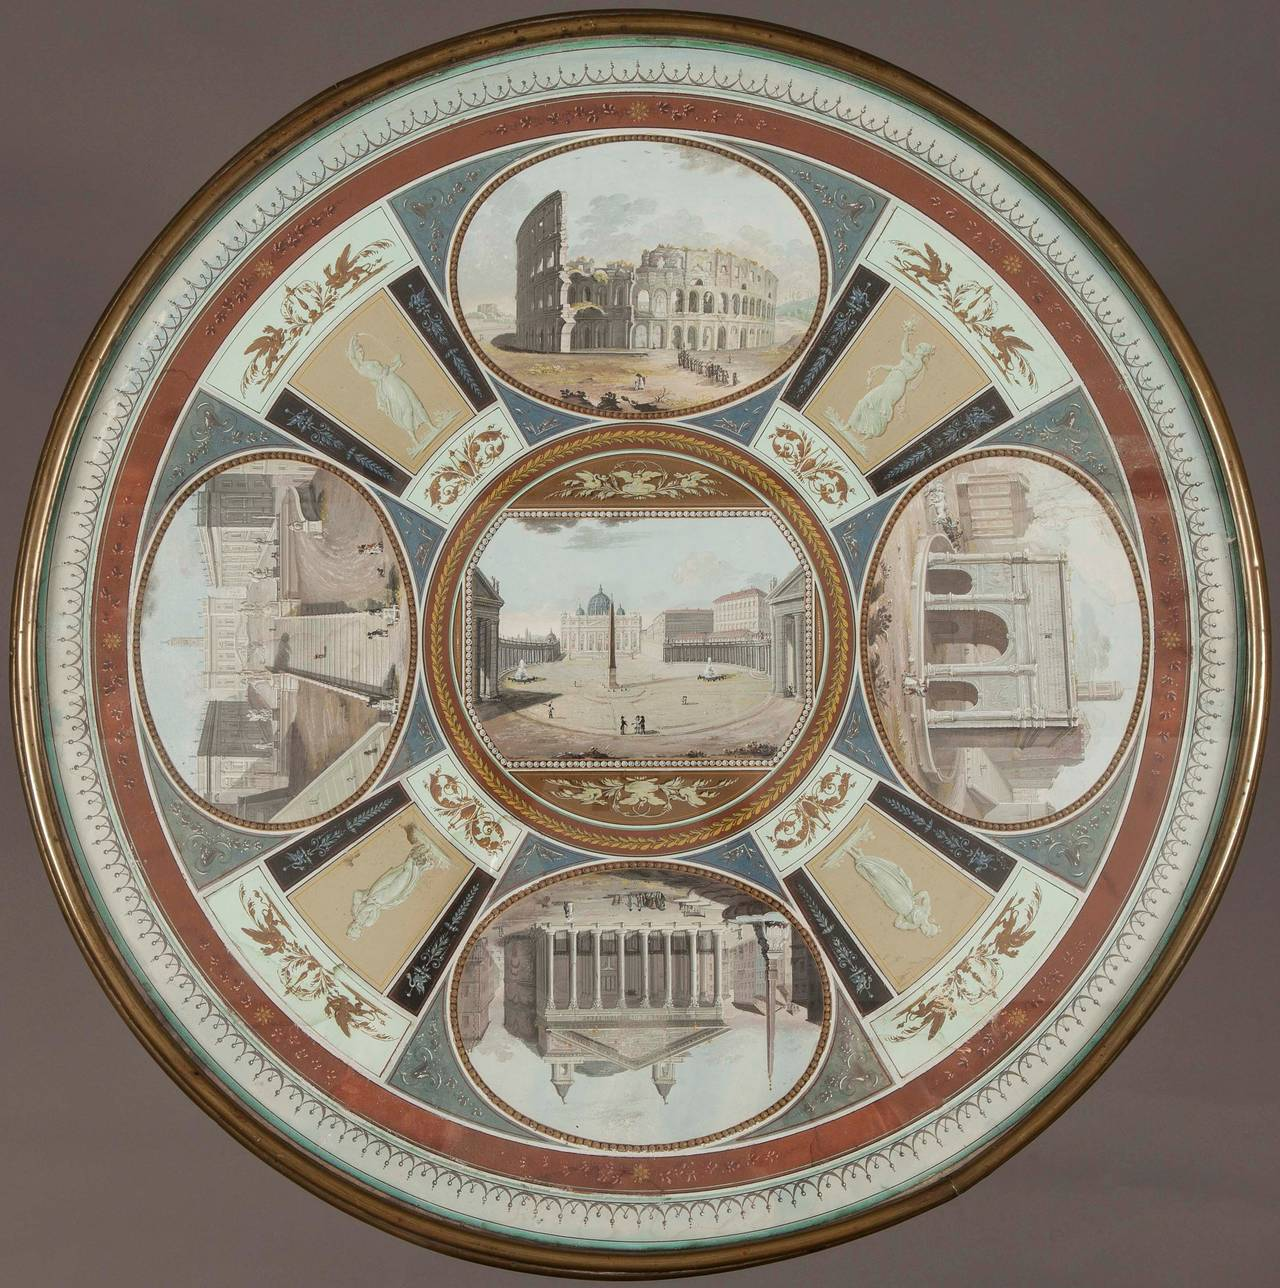 Constructed in a good flame-veneer mahogany, with gilt metal mounts; rising from a tripartite incurved base mounted on castors, issuing three entasis form cylindrical columns, gilt metal mounted at their capitols and bases, which support the